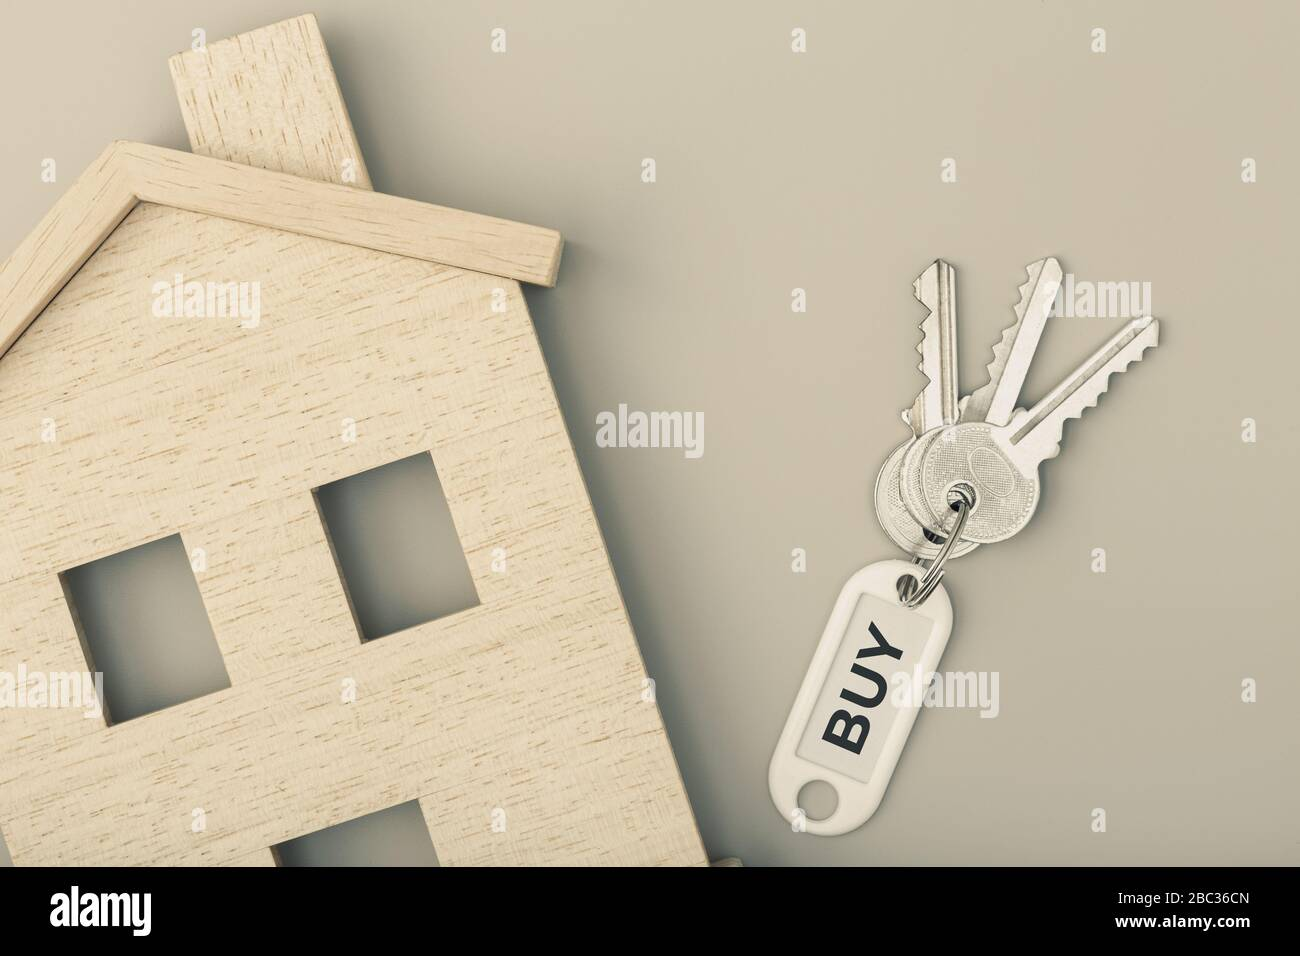 Buying A House Concept Real Estate Market House Icon With Keys Copy Space Top View Stock Photo Alamy